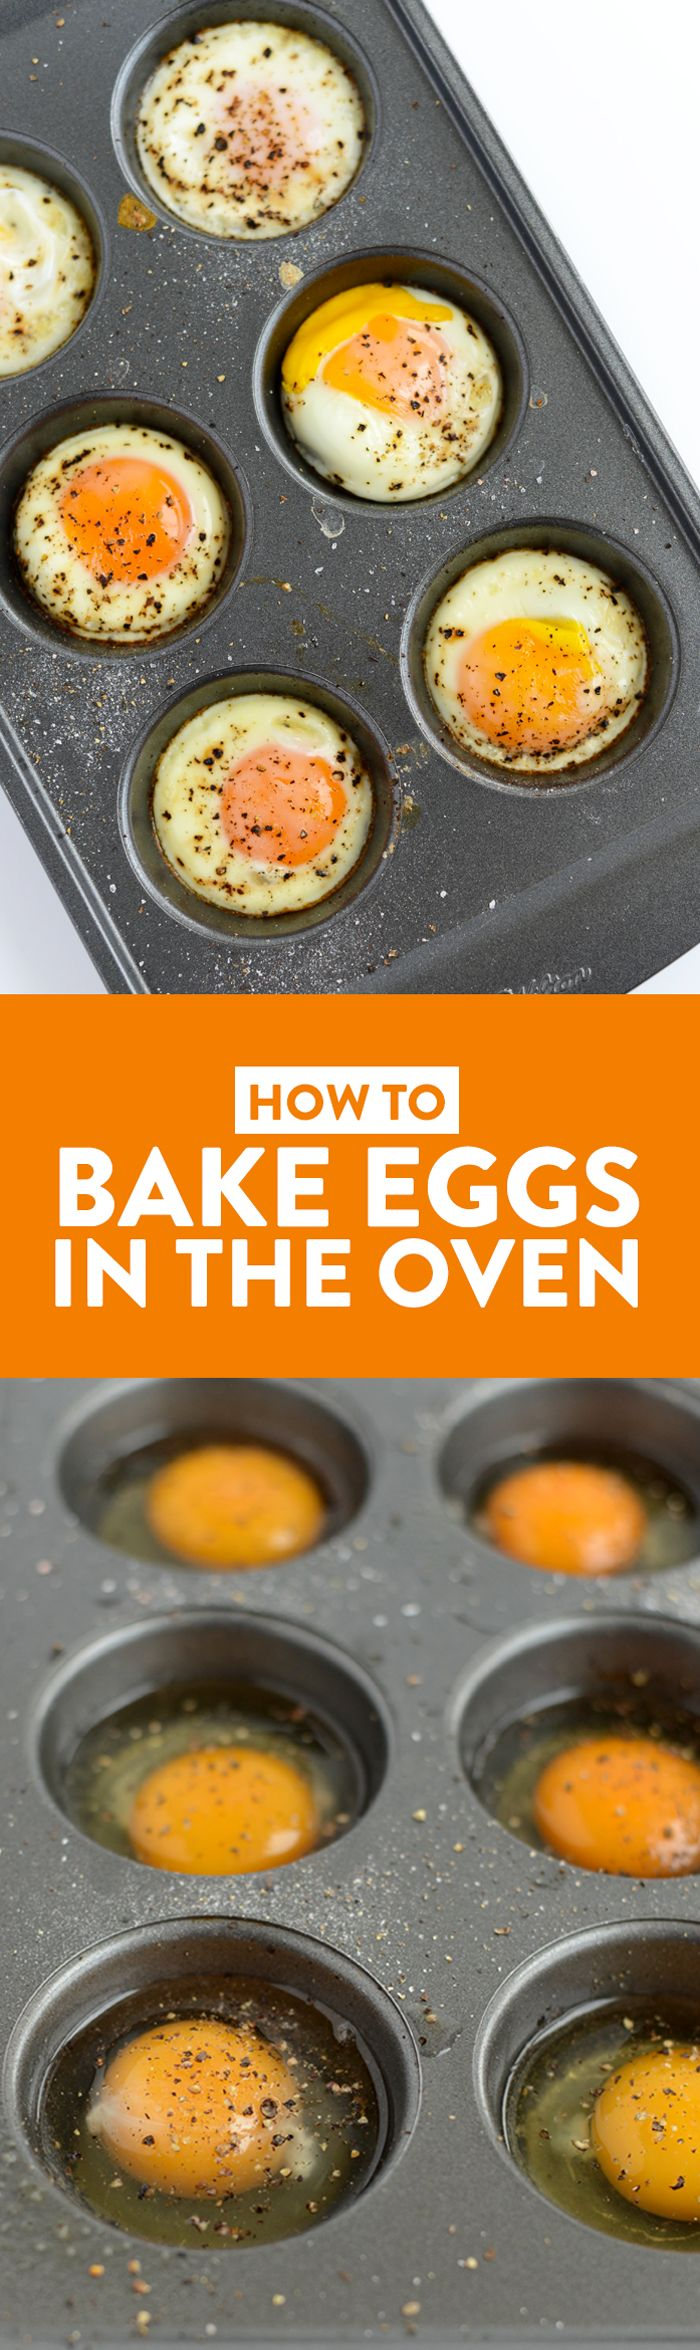 Follow this guide for how to bake eggs in the oven and you will have an easy-to-make, high-protein snack with all of the hard-boiled egg goodness minus the hassle of peeling off that stubborn shell. You can eat it at home or on the go, hot or cold. Ya rea